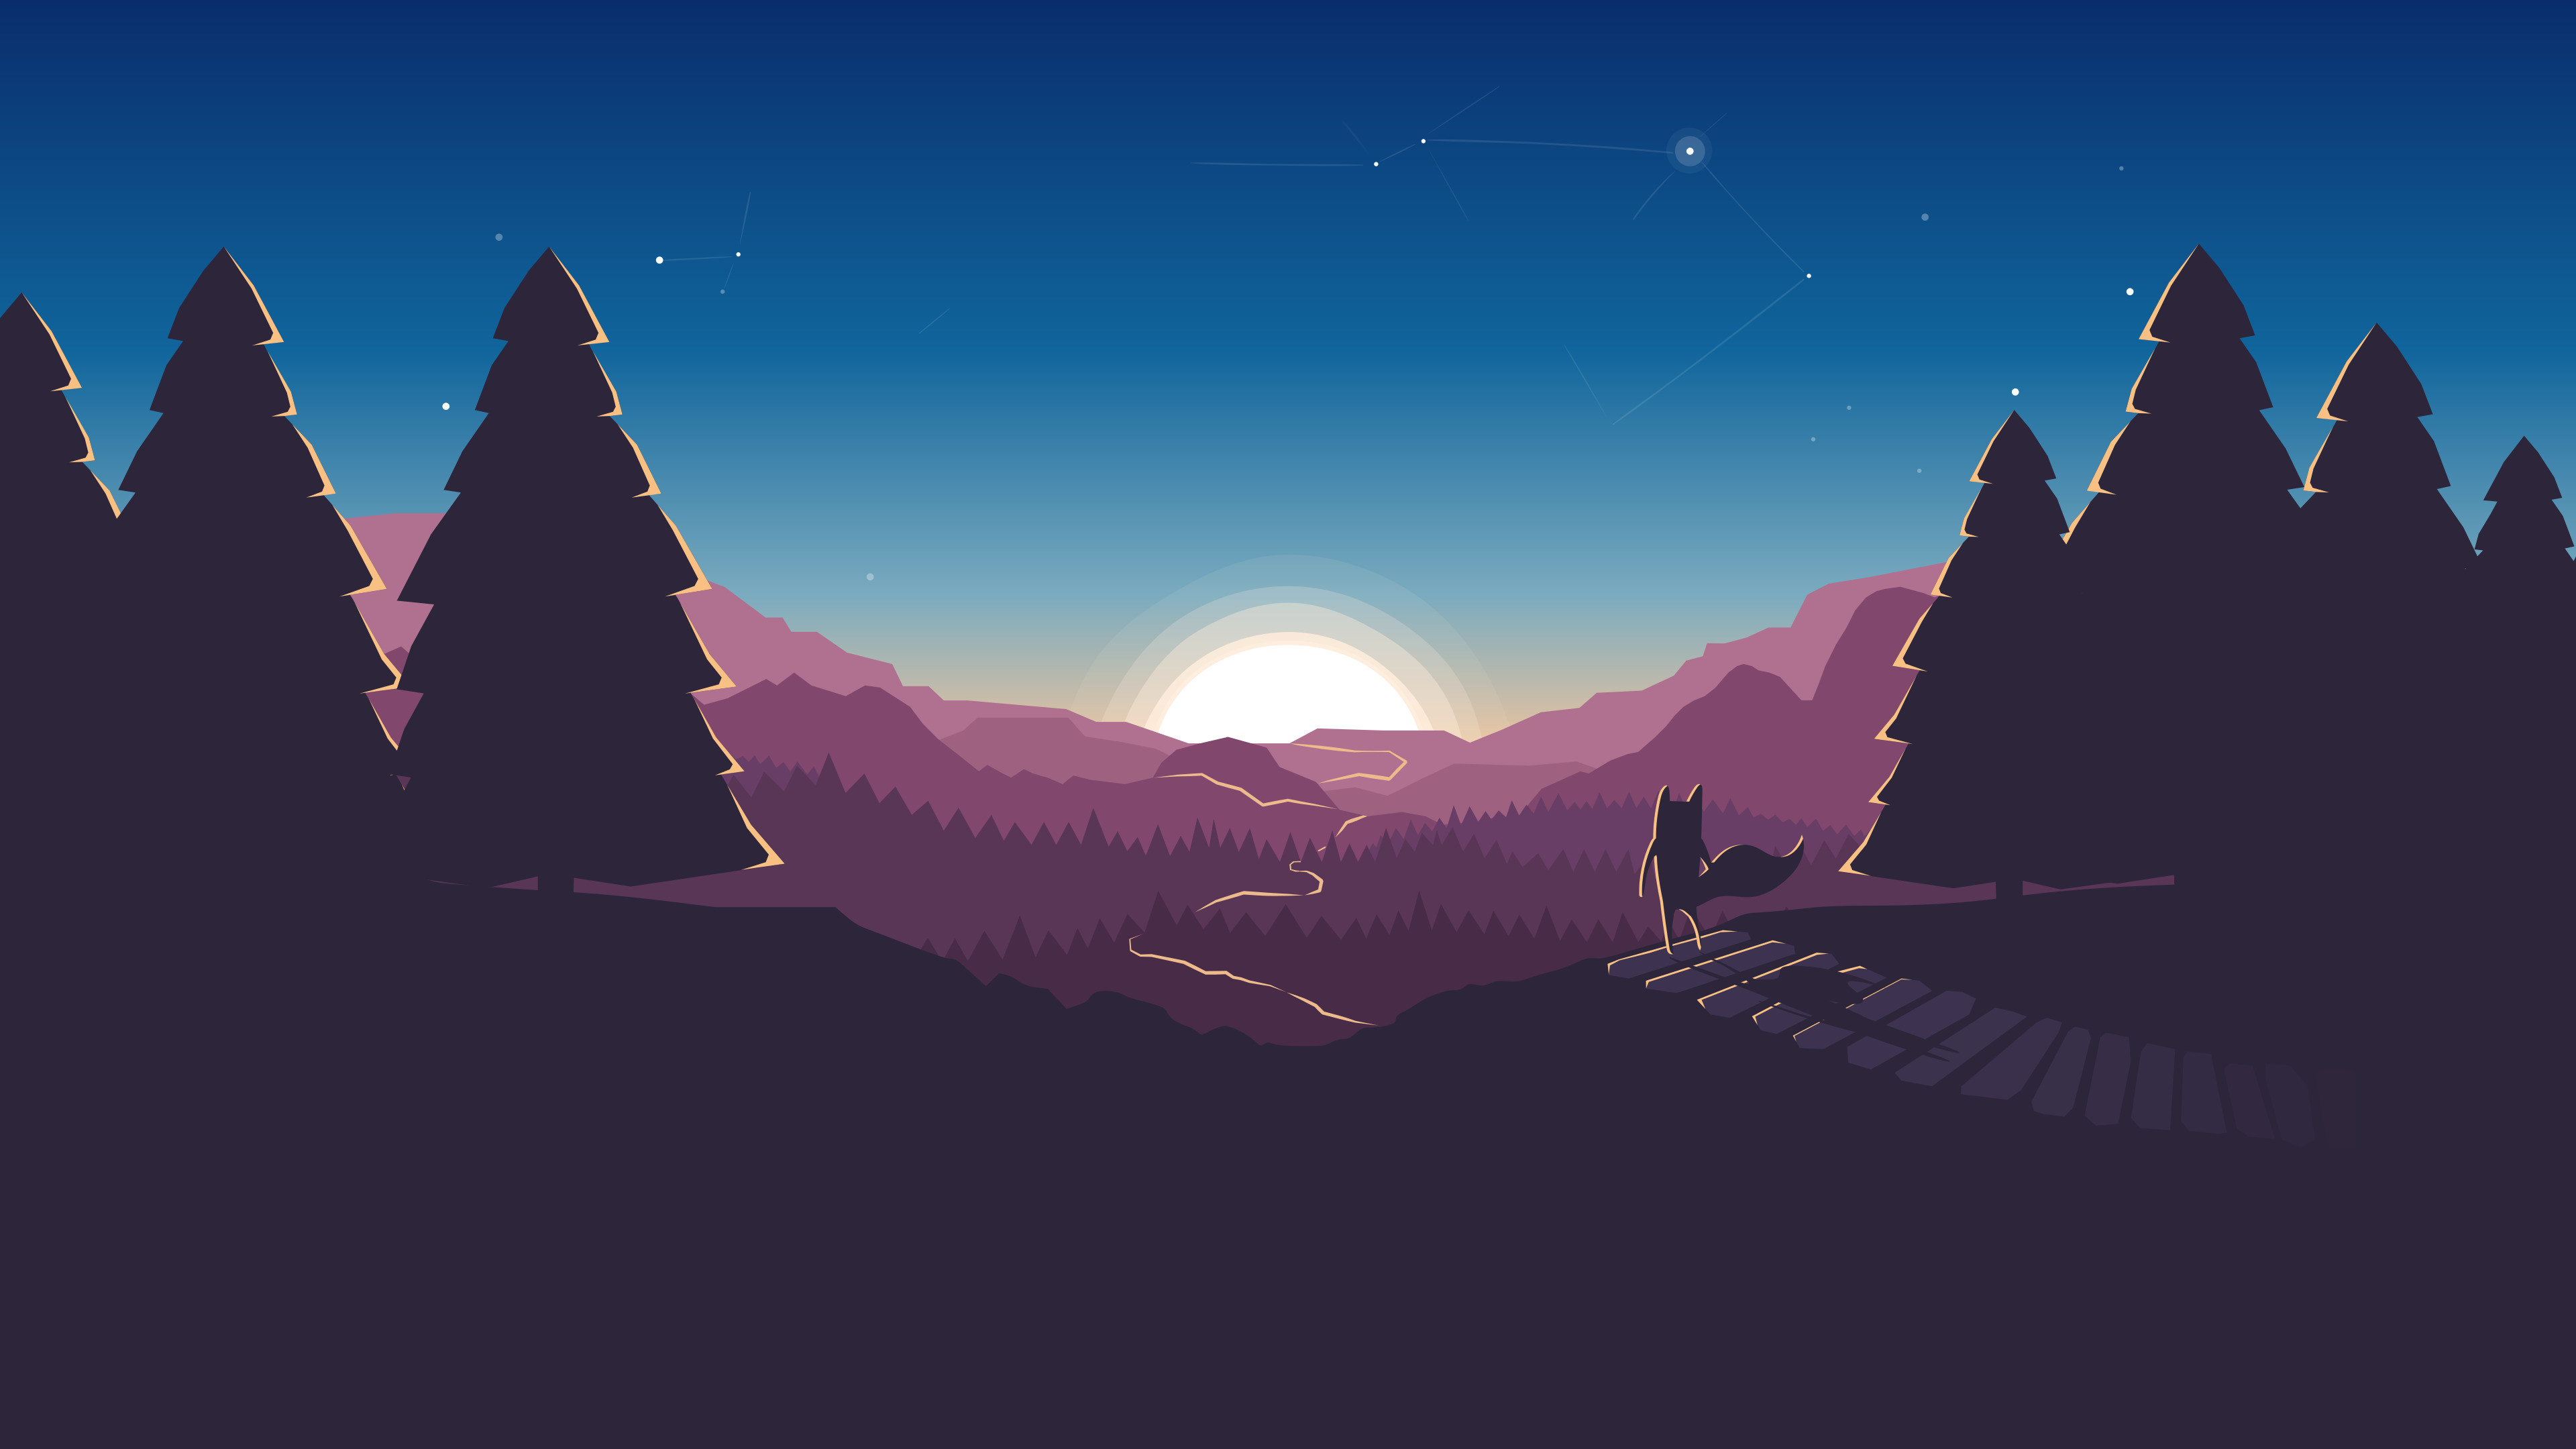 3840x2160 horizon, Minimalism, Illustration, Artwork, Digital art, Forest, Sunset, Mozilla  Firefox Wallpapers HD / Desktop and Mobile Backgrounds